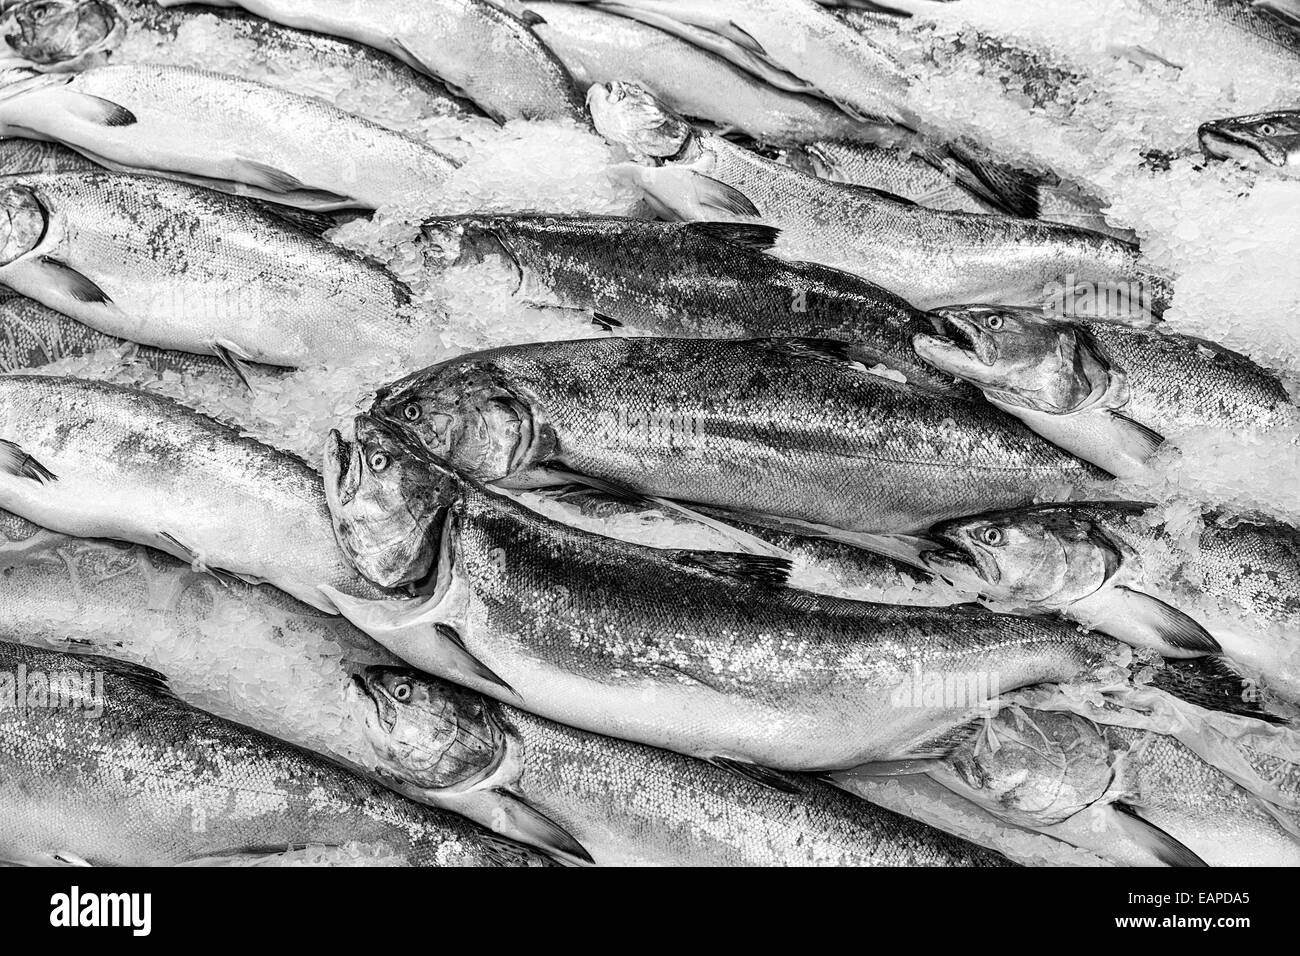 Salmon at Fish Market - Stock Image